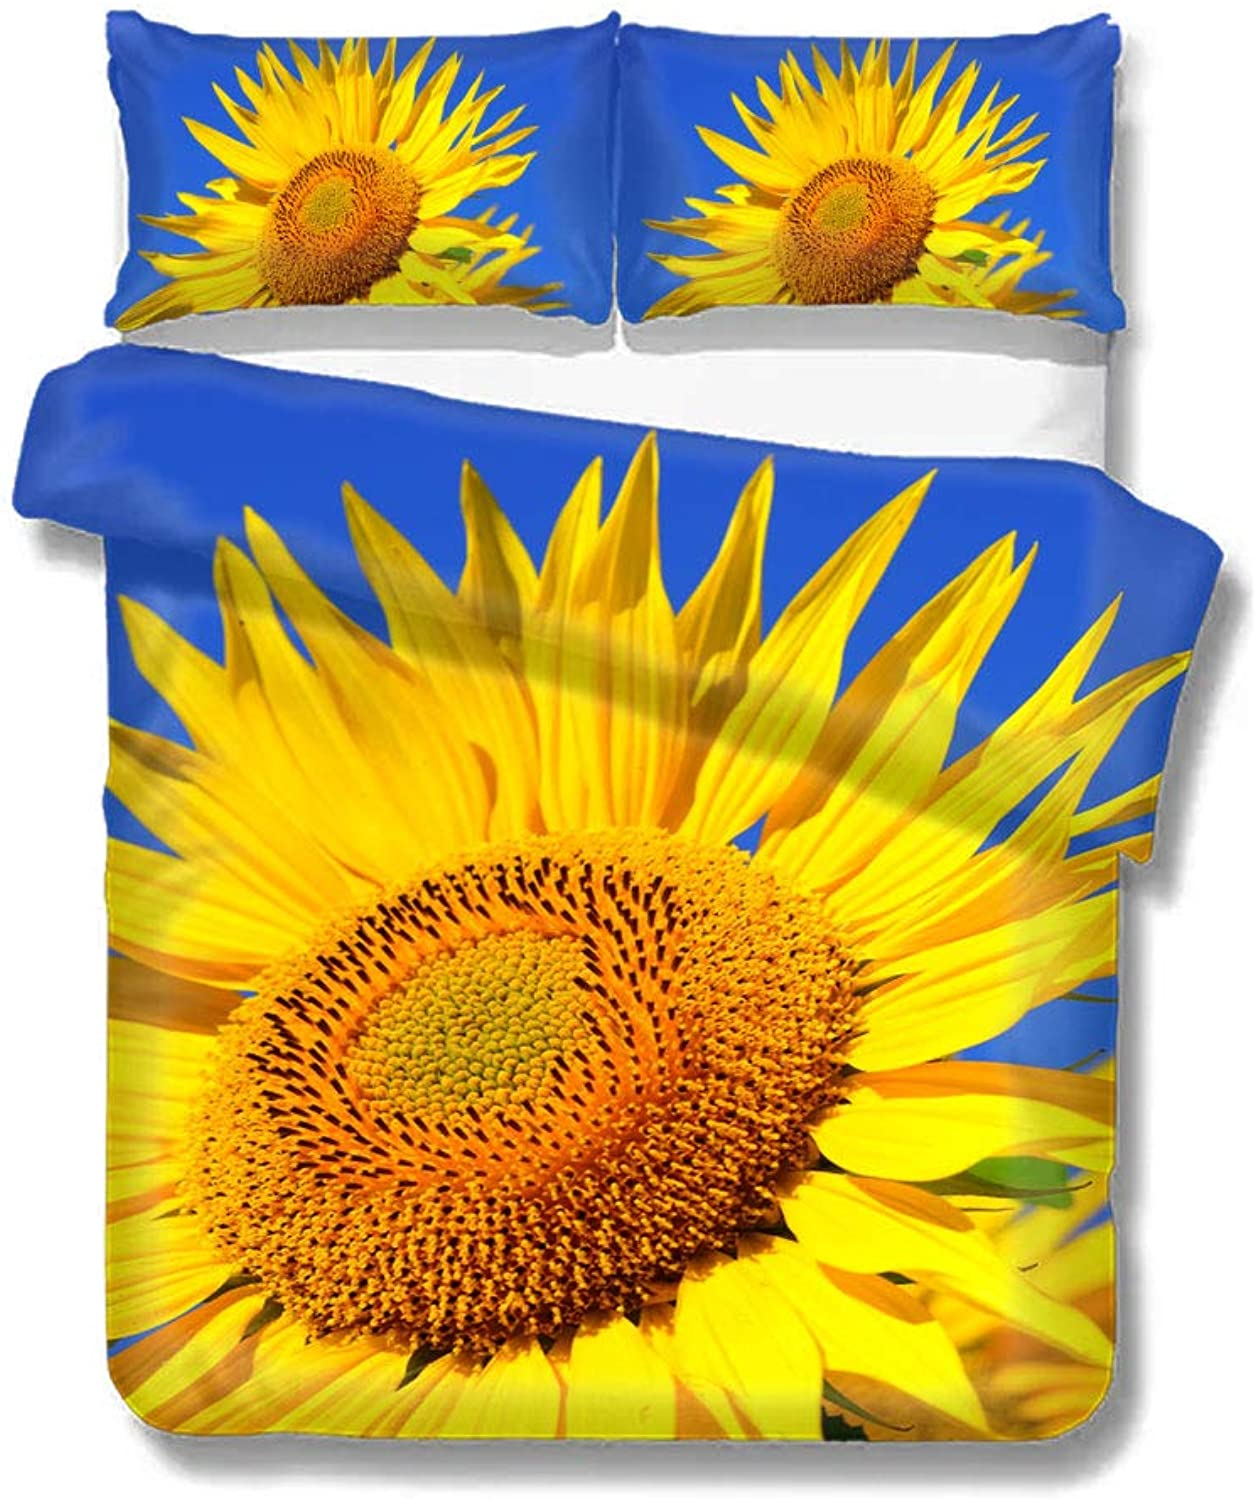 Duvet Cover Sunflower Summer Beautiful Bloom BlossomHome Bedding Duvet Cover Set Soft Comfortable Breathable Twin Size